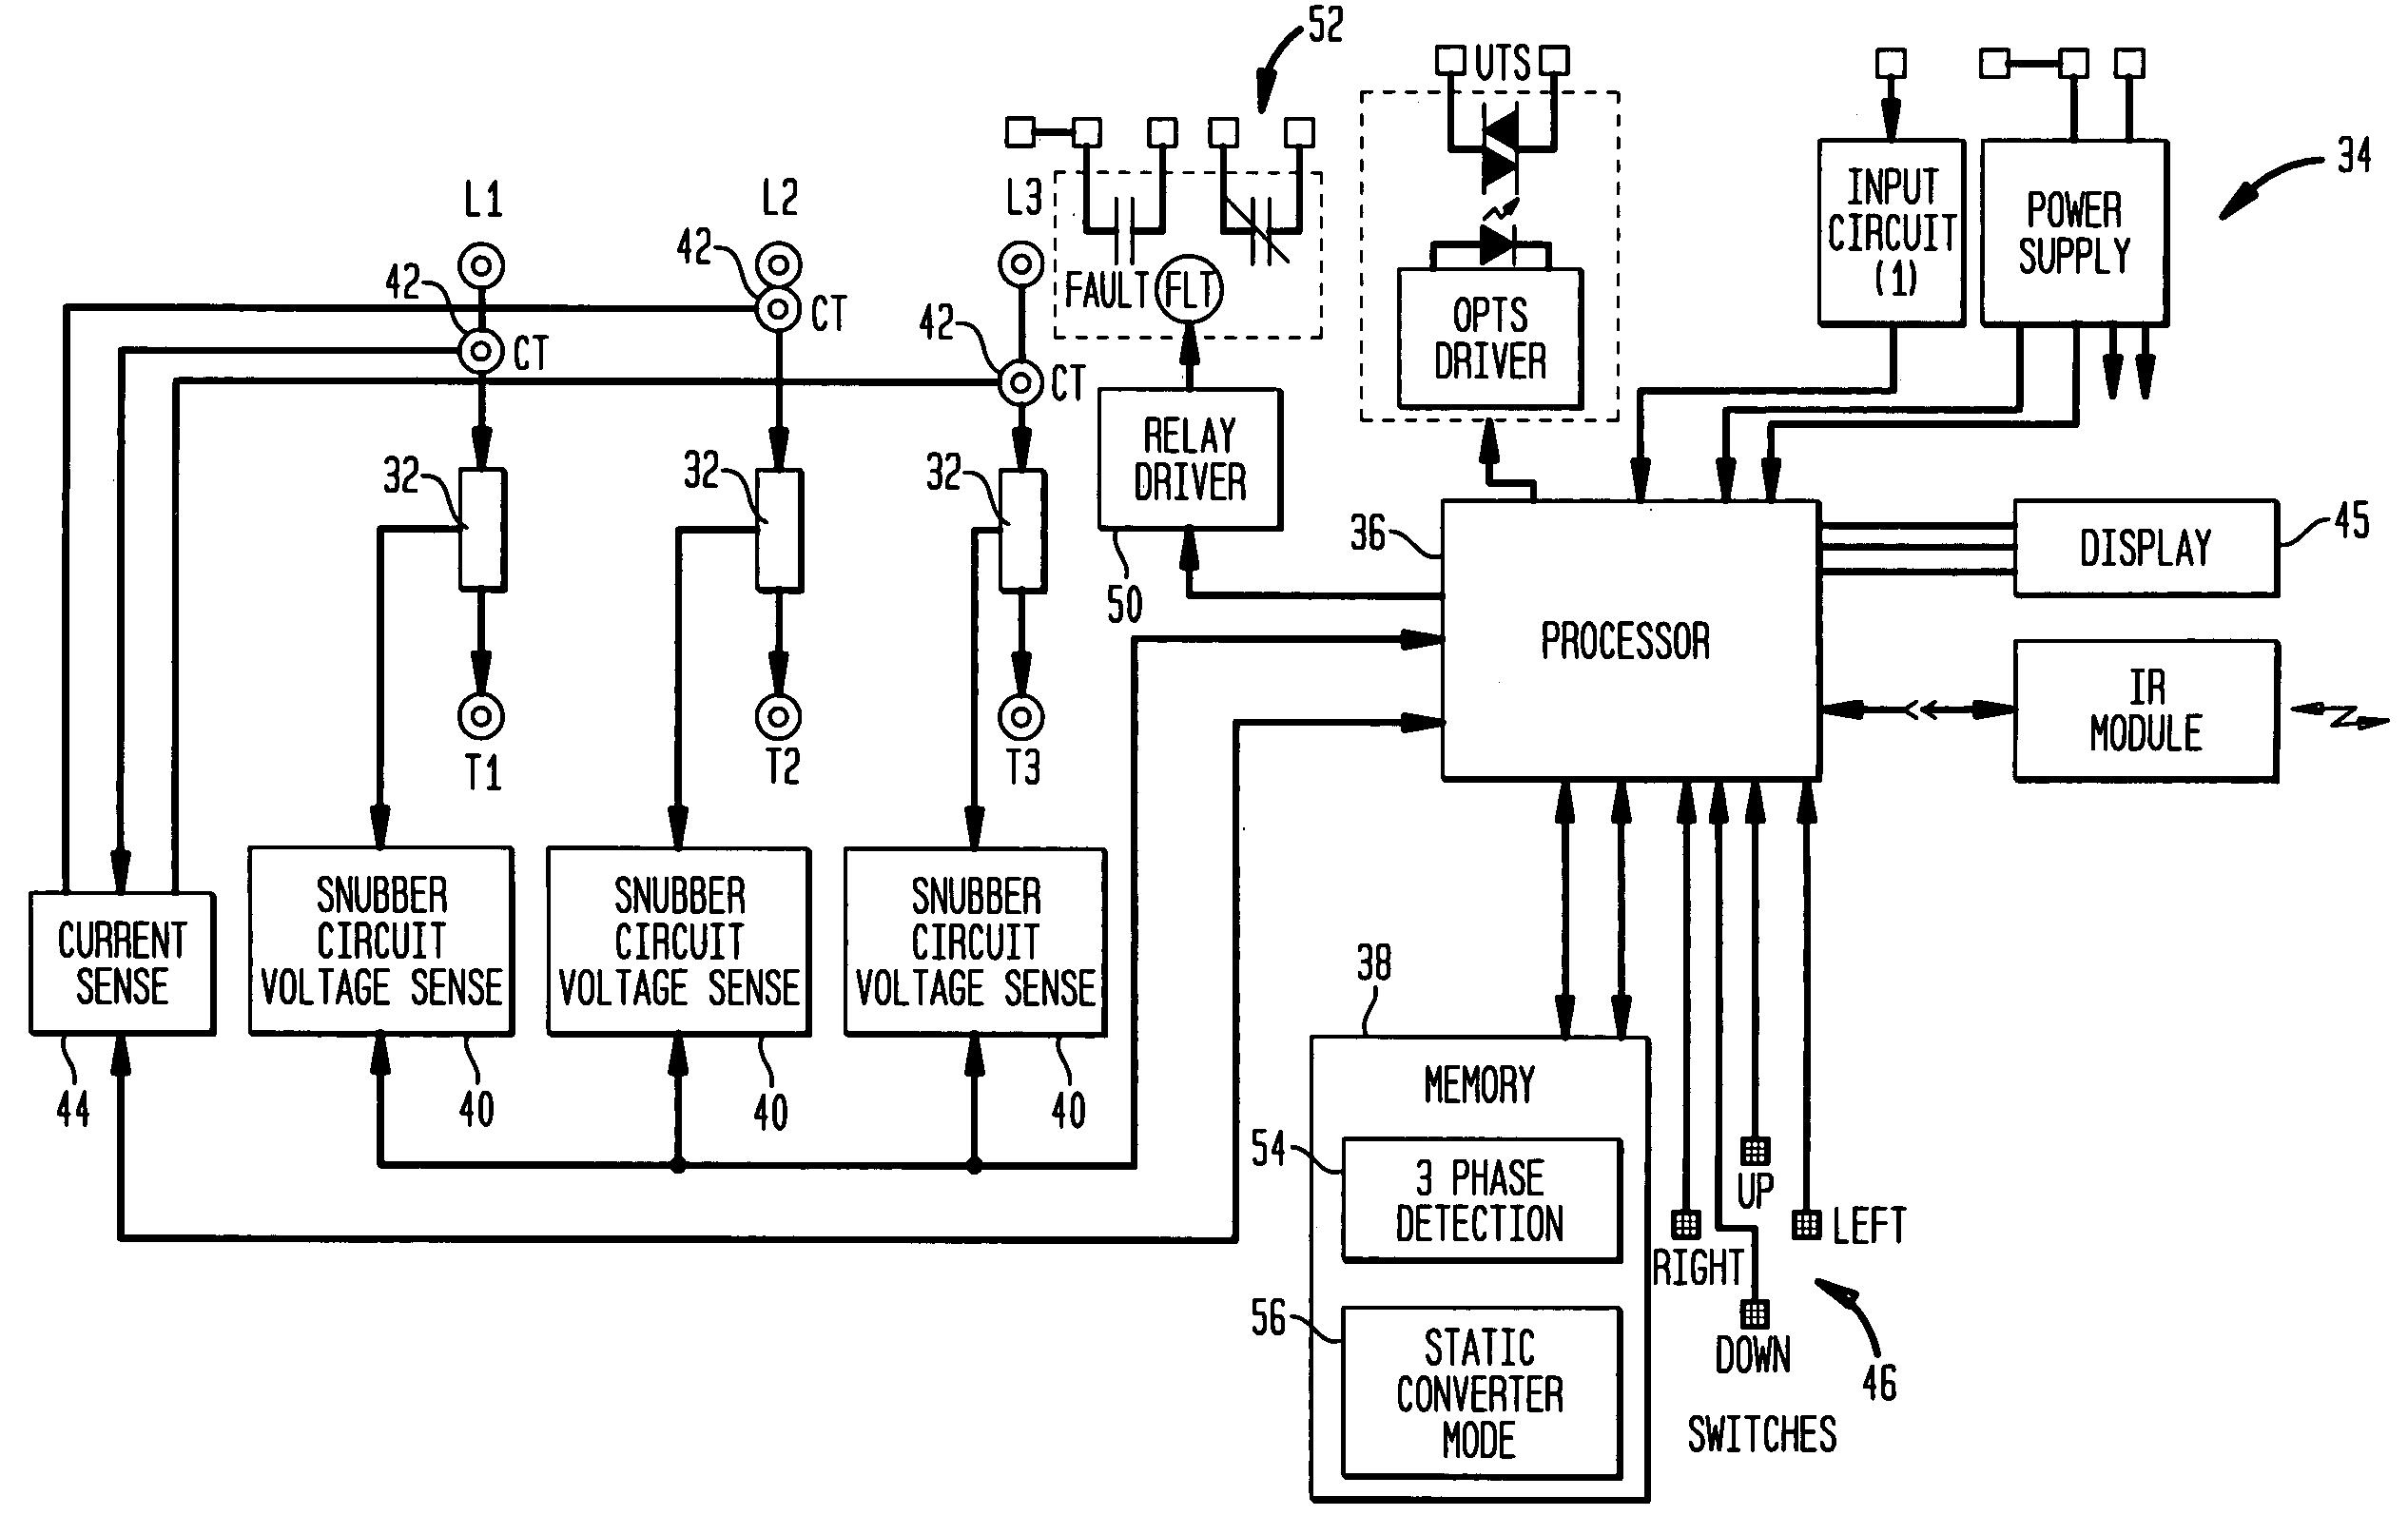 US07859217 20101228 D00000 patent us7859217 system and method for operating a soft starter eaton soft starter wiring diagram at bakdesigns.co